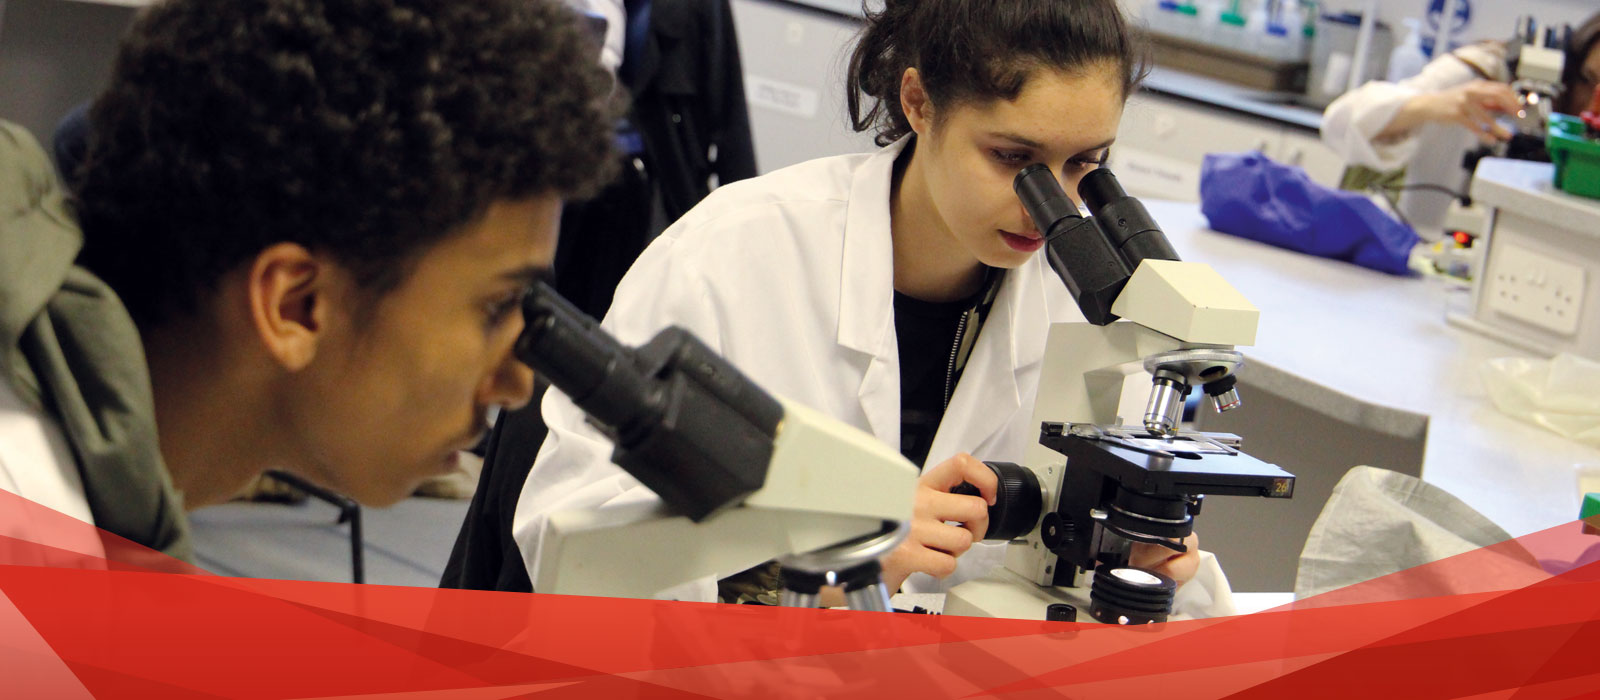 Apply scientific knowledge to the world we live in and gain a qualification highly regarded by universities and employers.